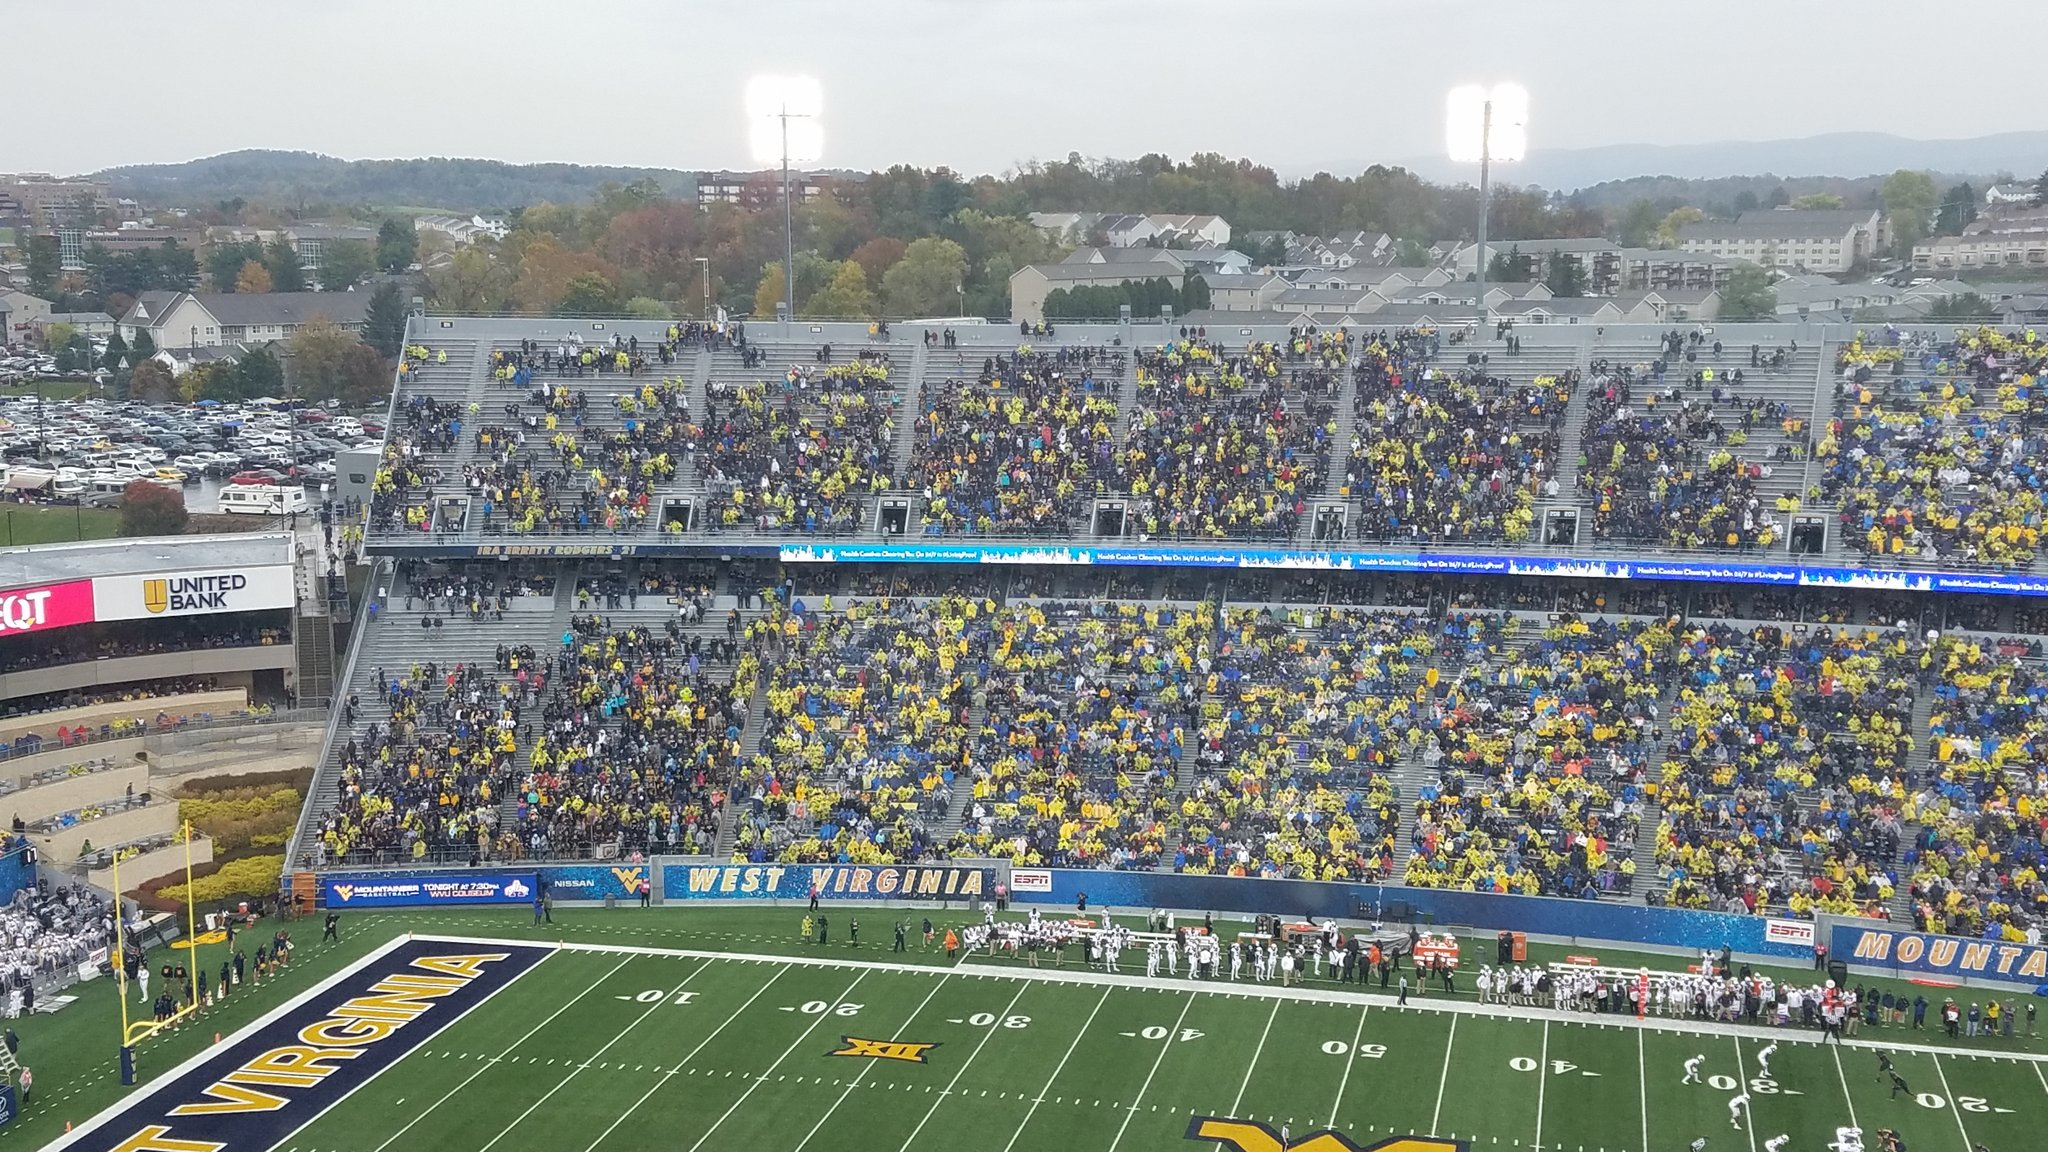 WVU Student Section